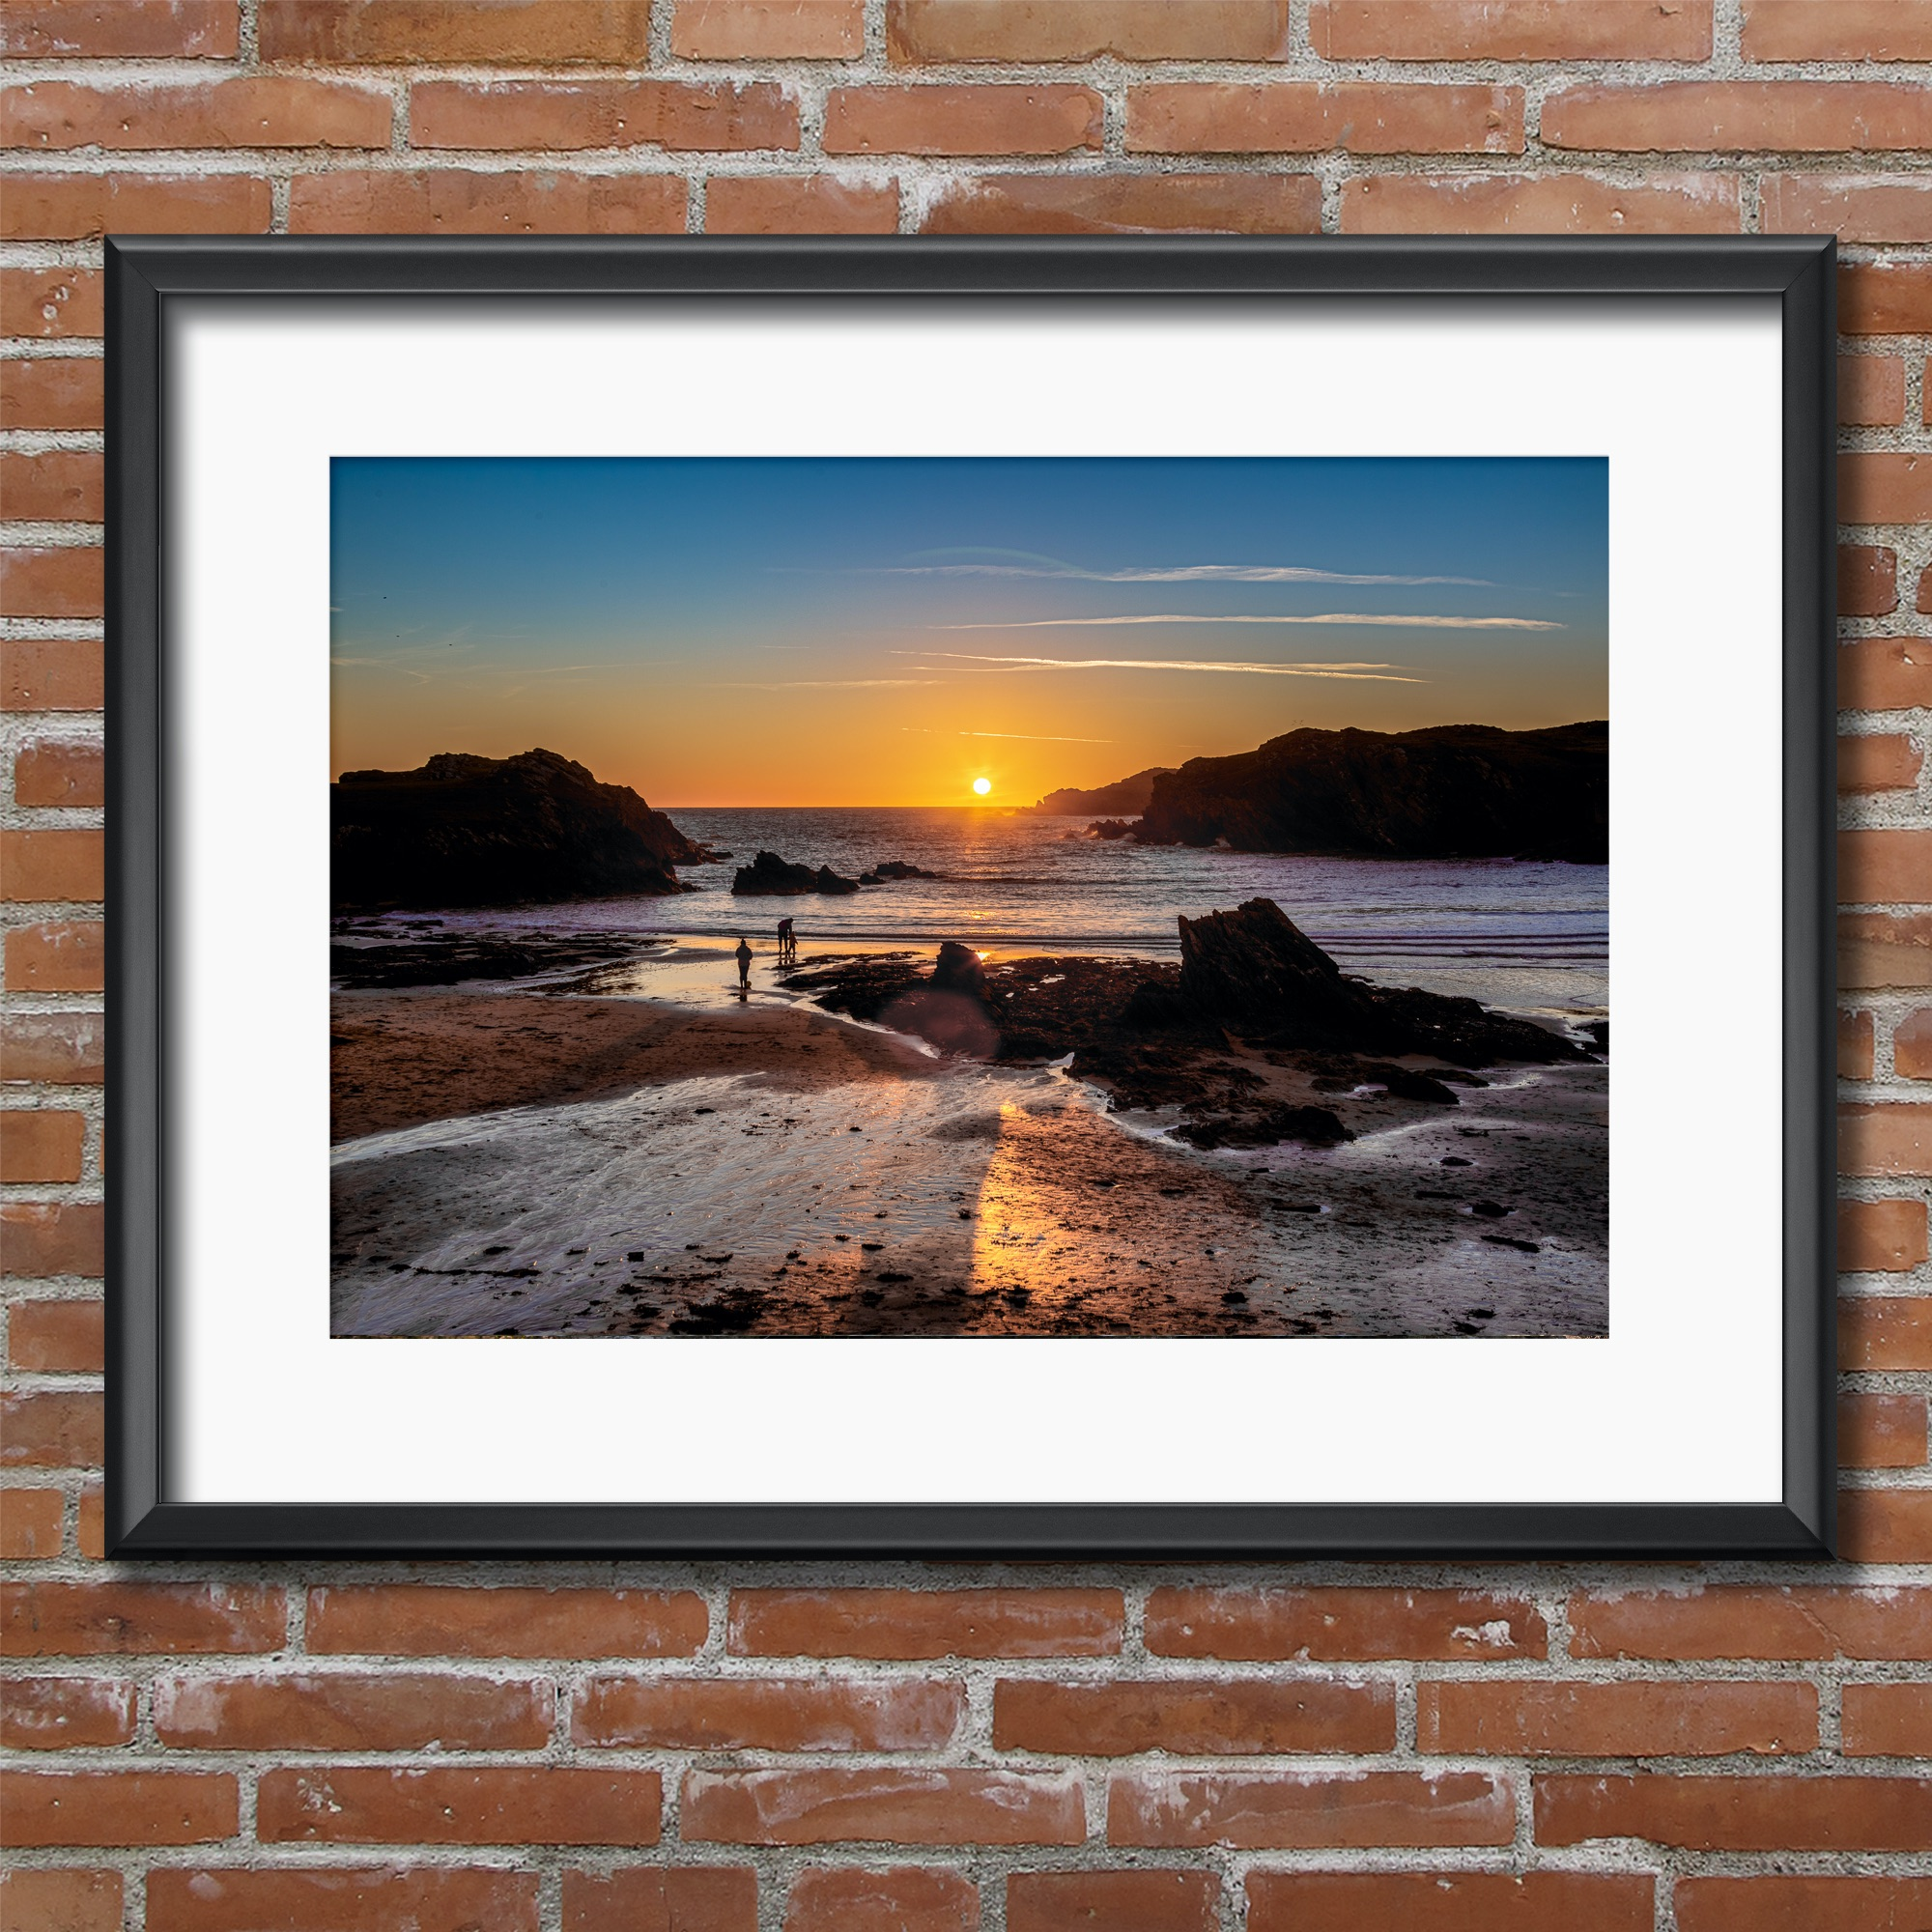 Sunset on Porth Dafarch, Anglesey